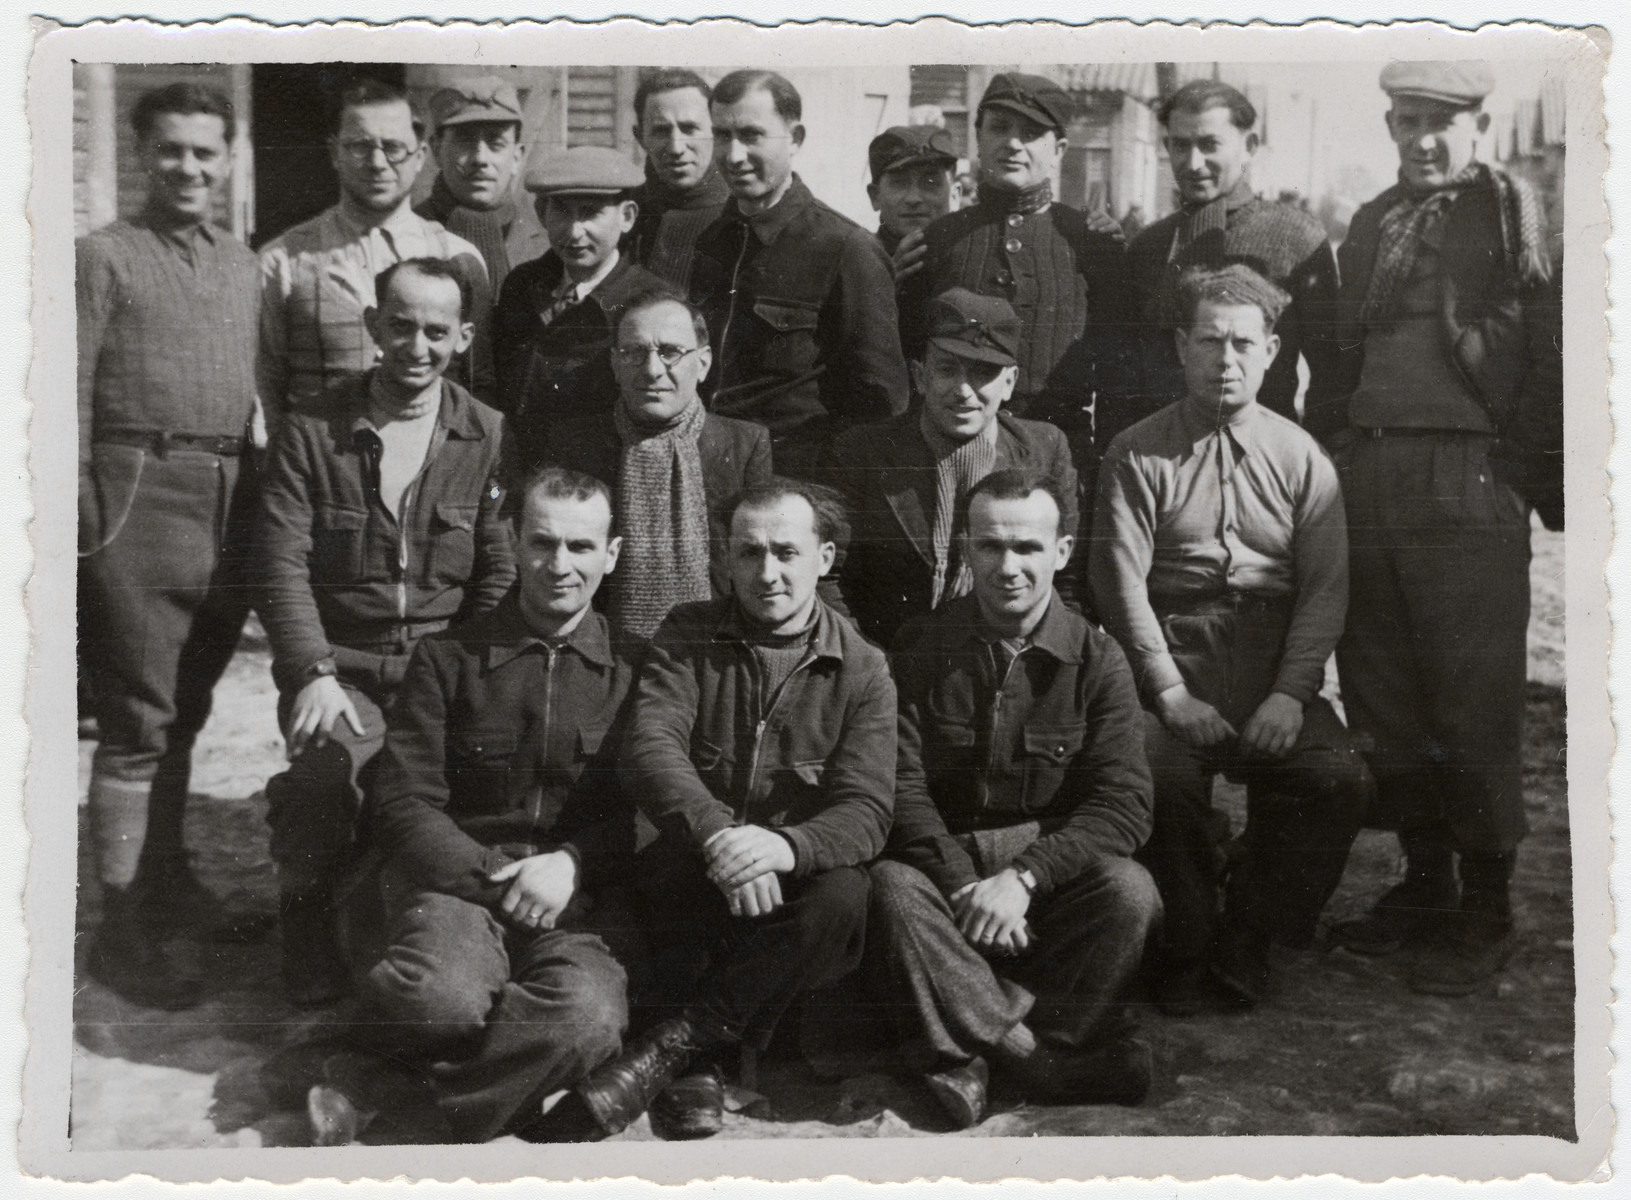 Group portrait of prisoners in the Beaune-la-Rolande internment camp.  Jankiel Sztal is pictured sitting (middle row, far left).  His brother Moishe is standing second from the right.